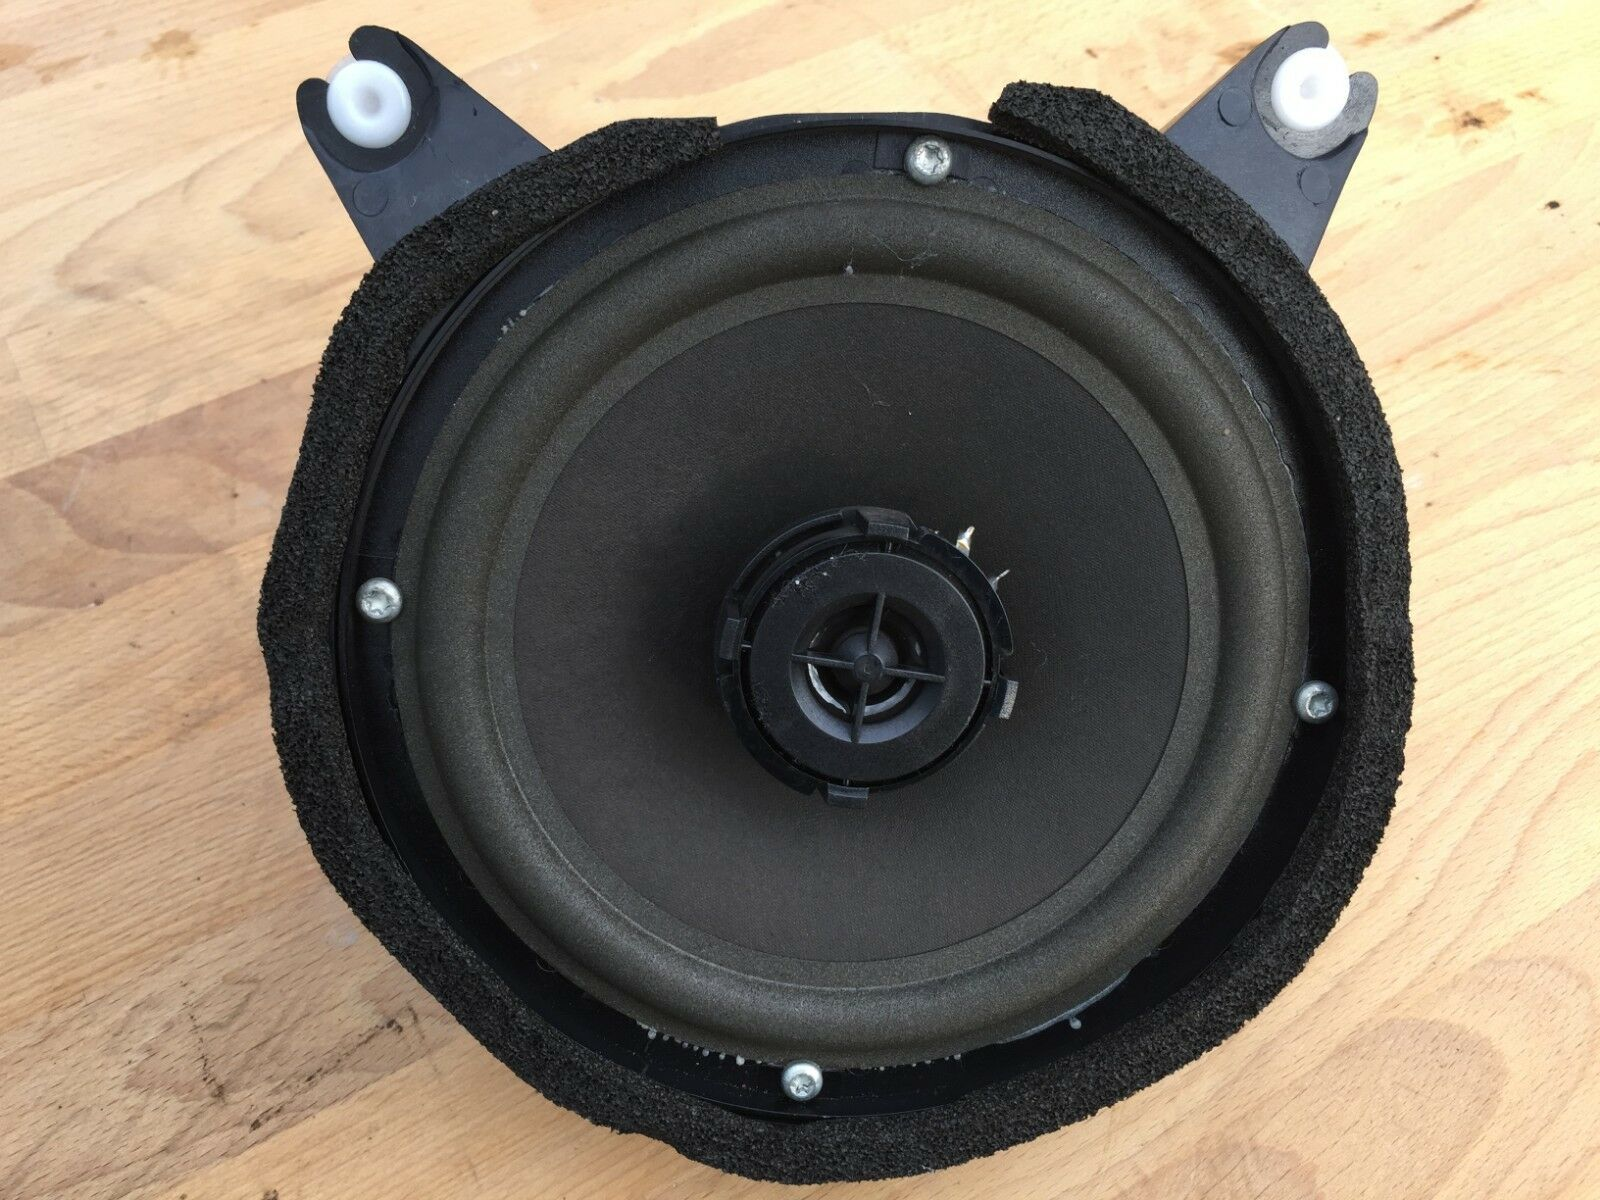 Genuine Volvo V70 Classic REAR Door Bass Speakers - 2 Available